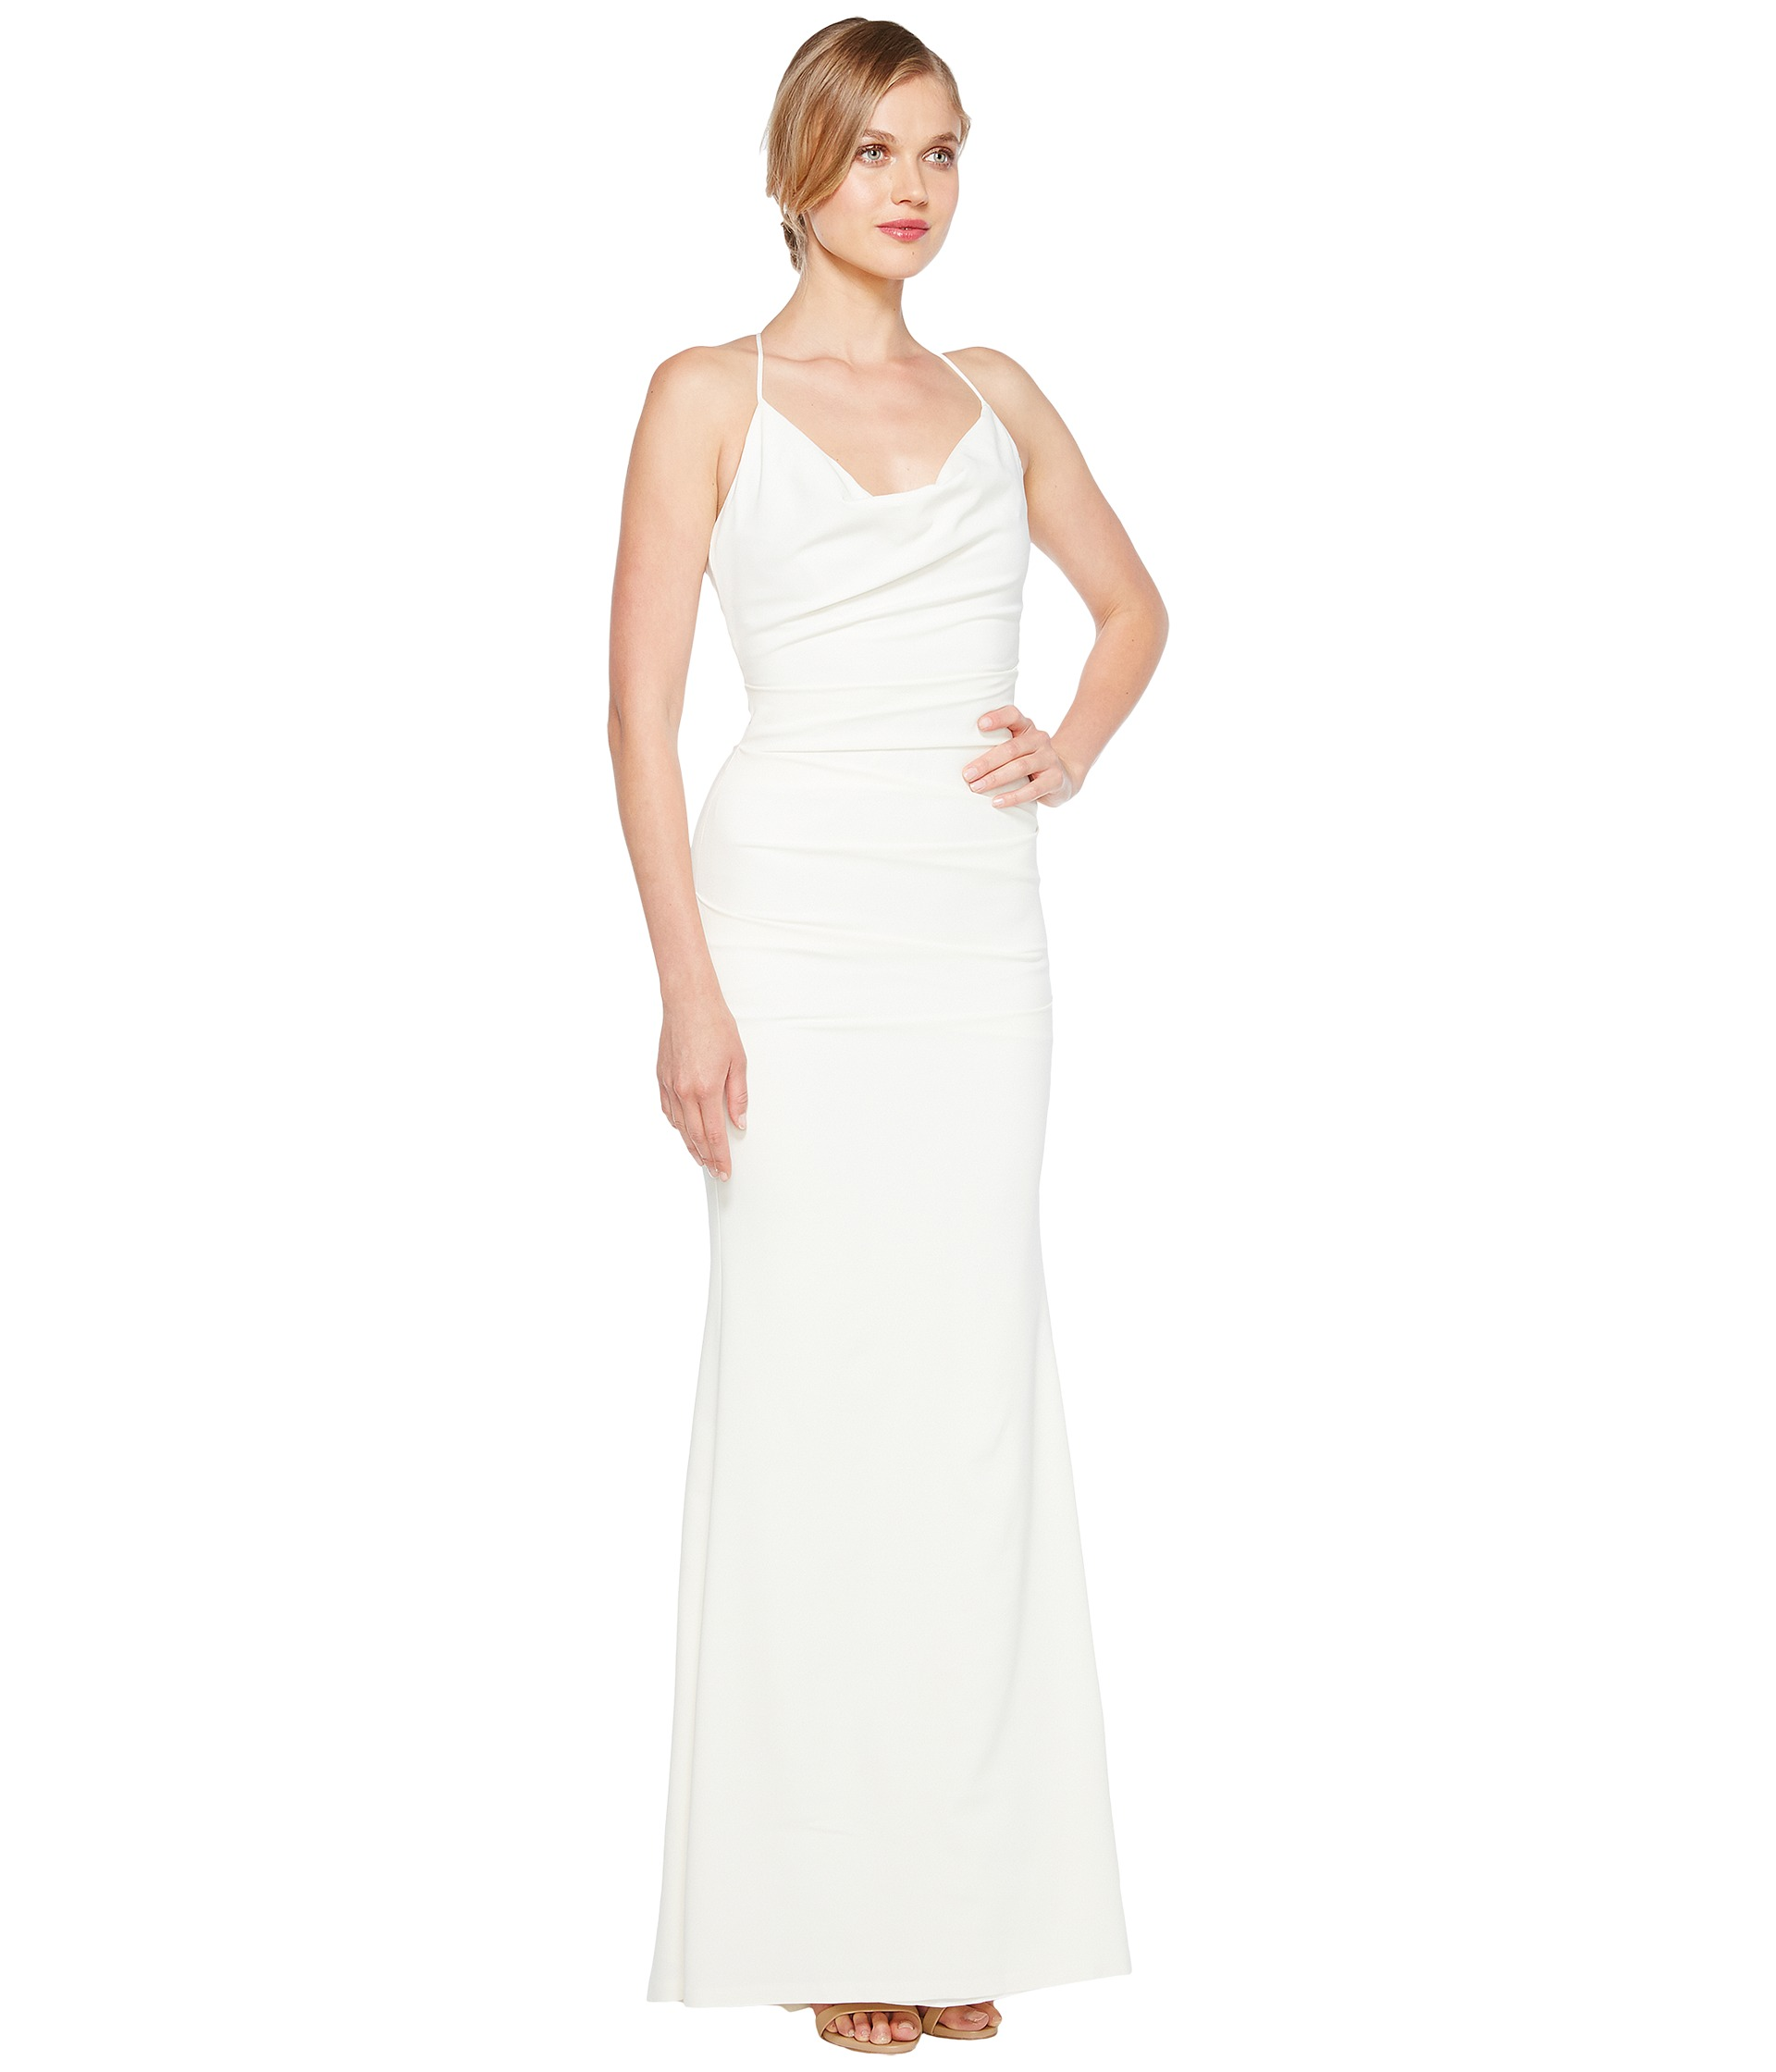 cowl neck wedding dress Sorry this video is unsupported on this browser